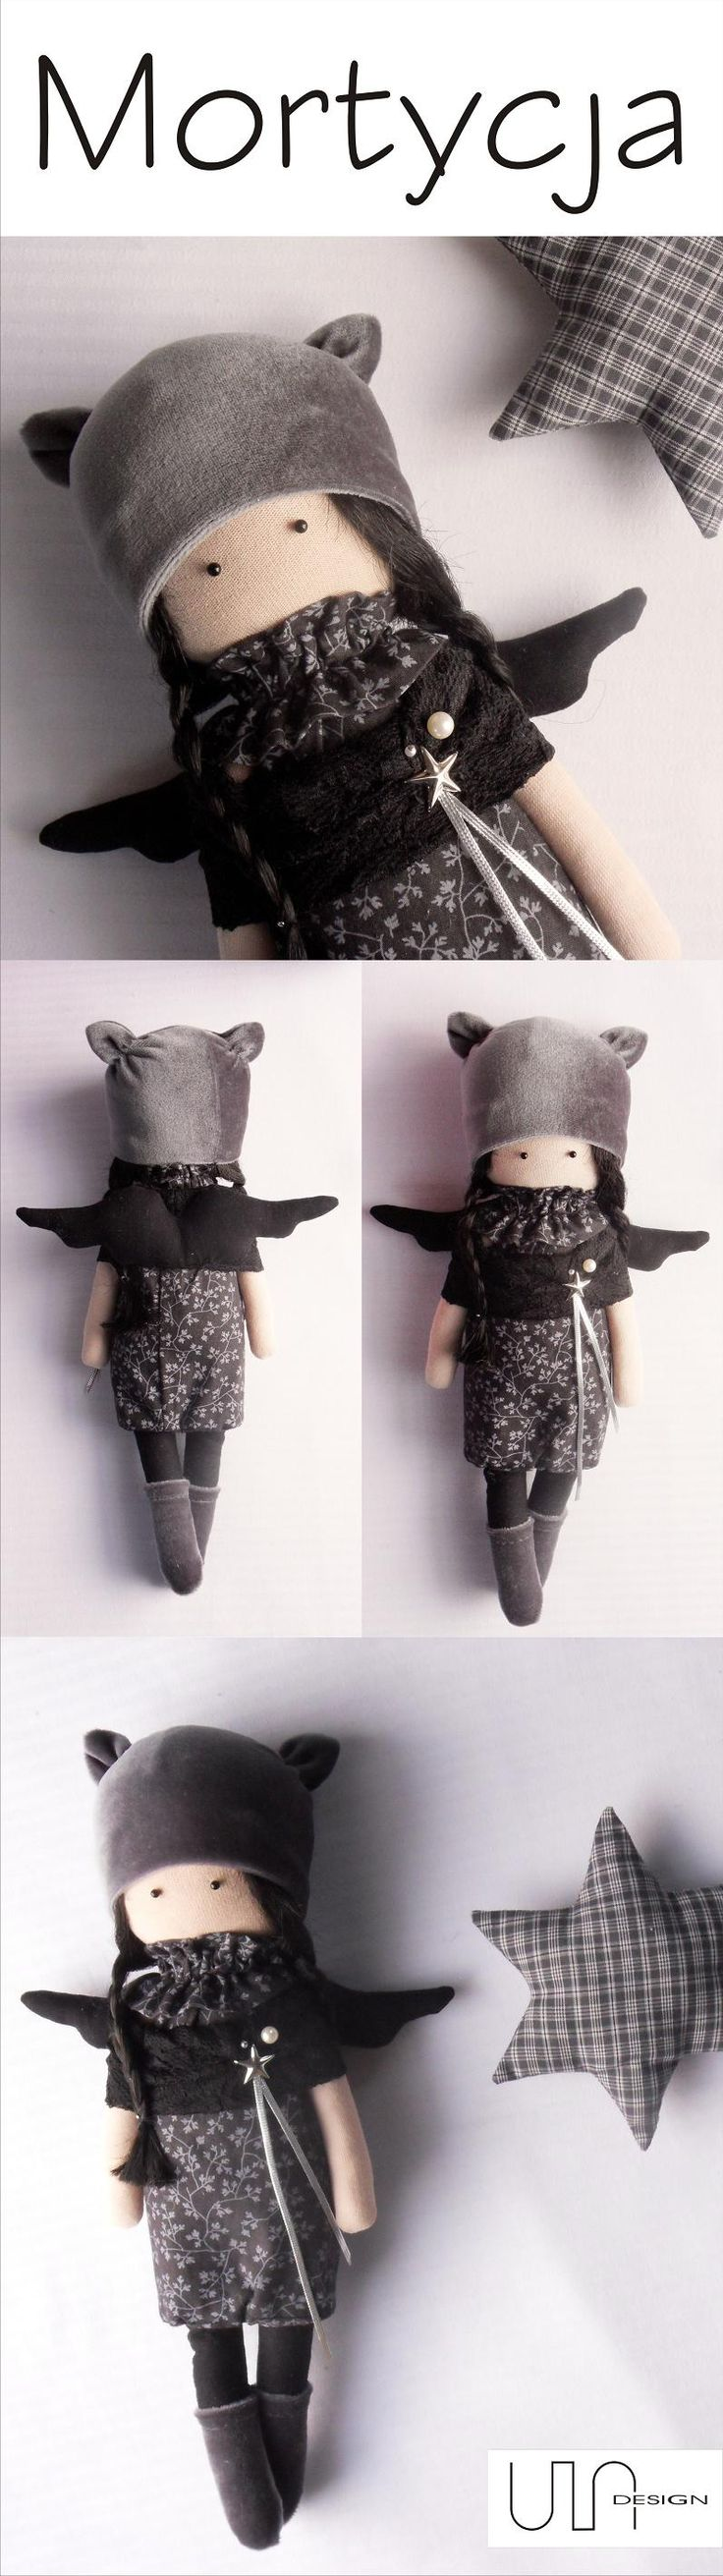 www.facebook.com/ula.design #angels #tilda #doll #wings #withangels #gift #handmade #sewing